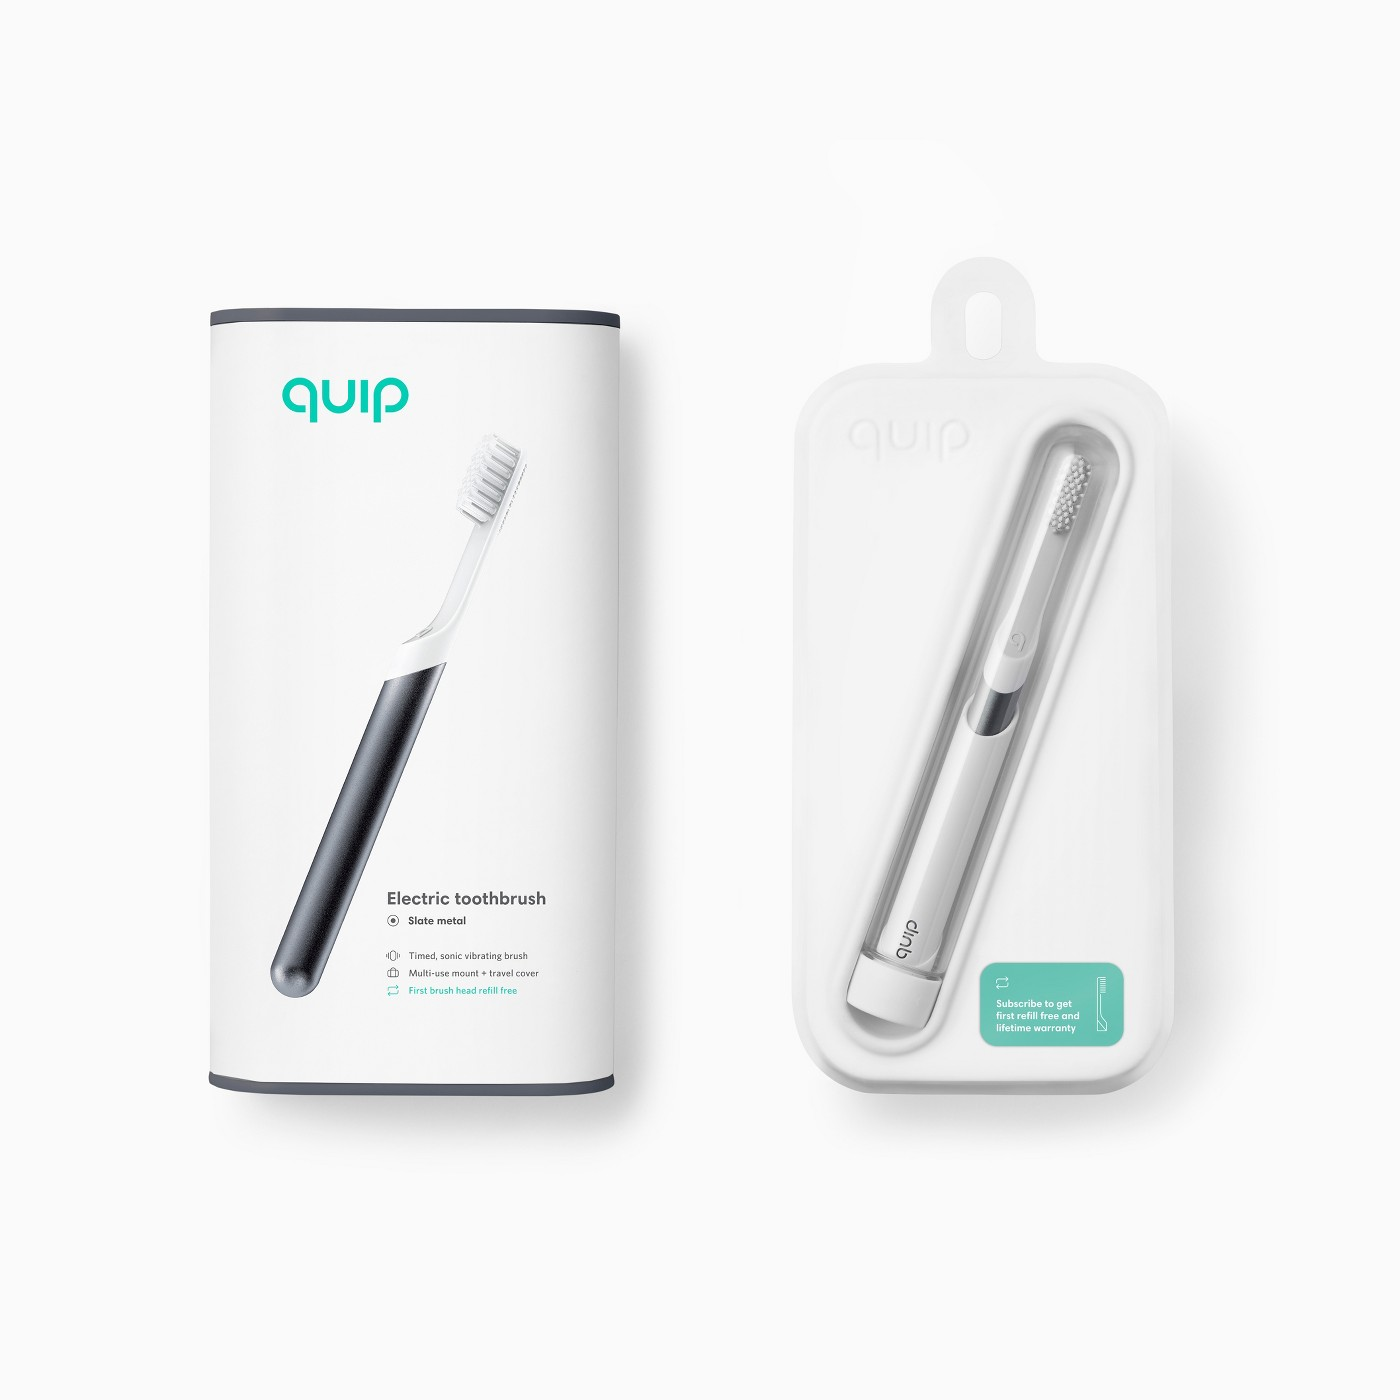 Quip Electric Toothbrush